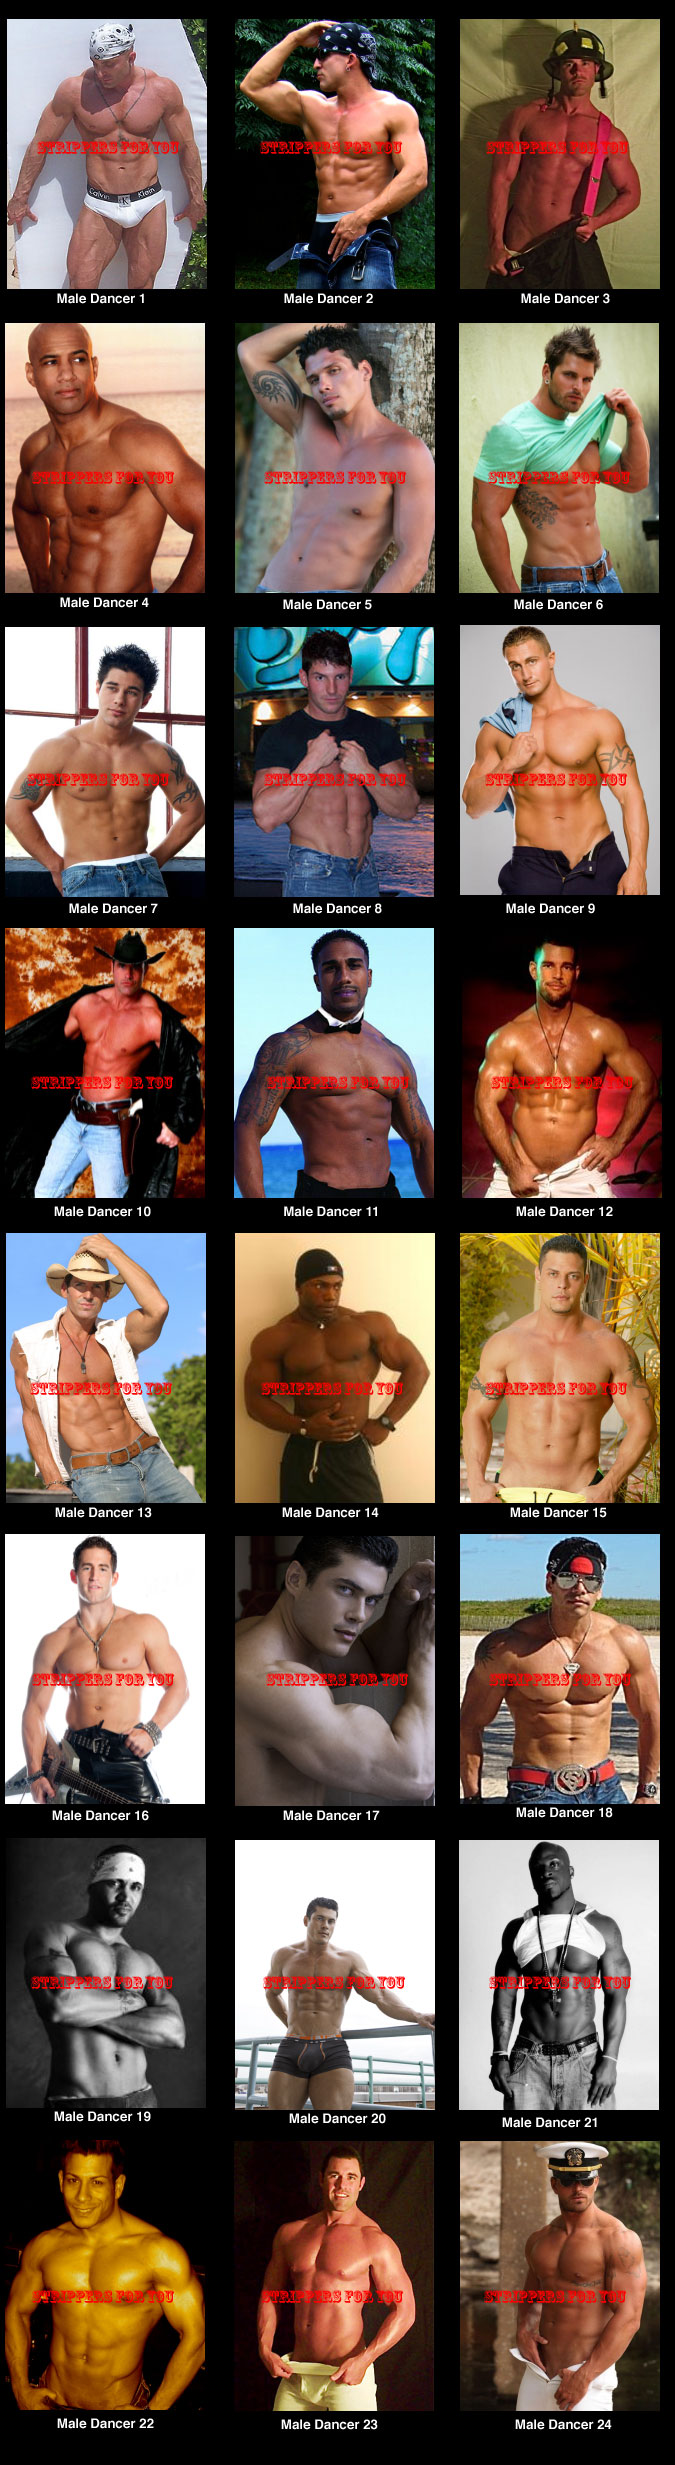 Milwaukee male strippers